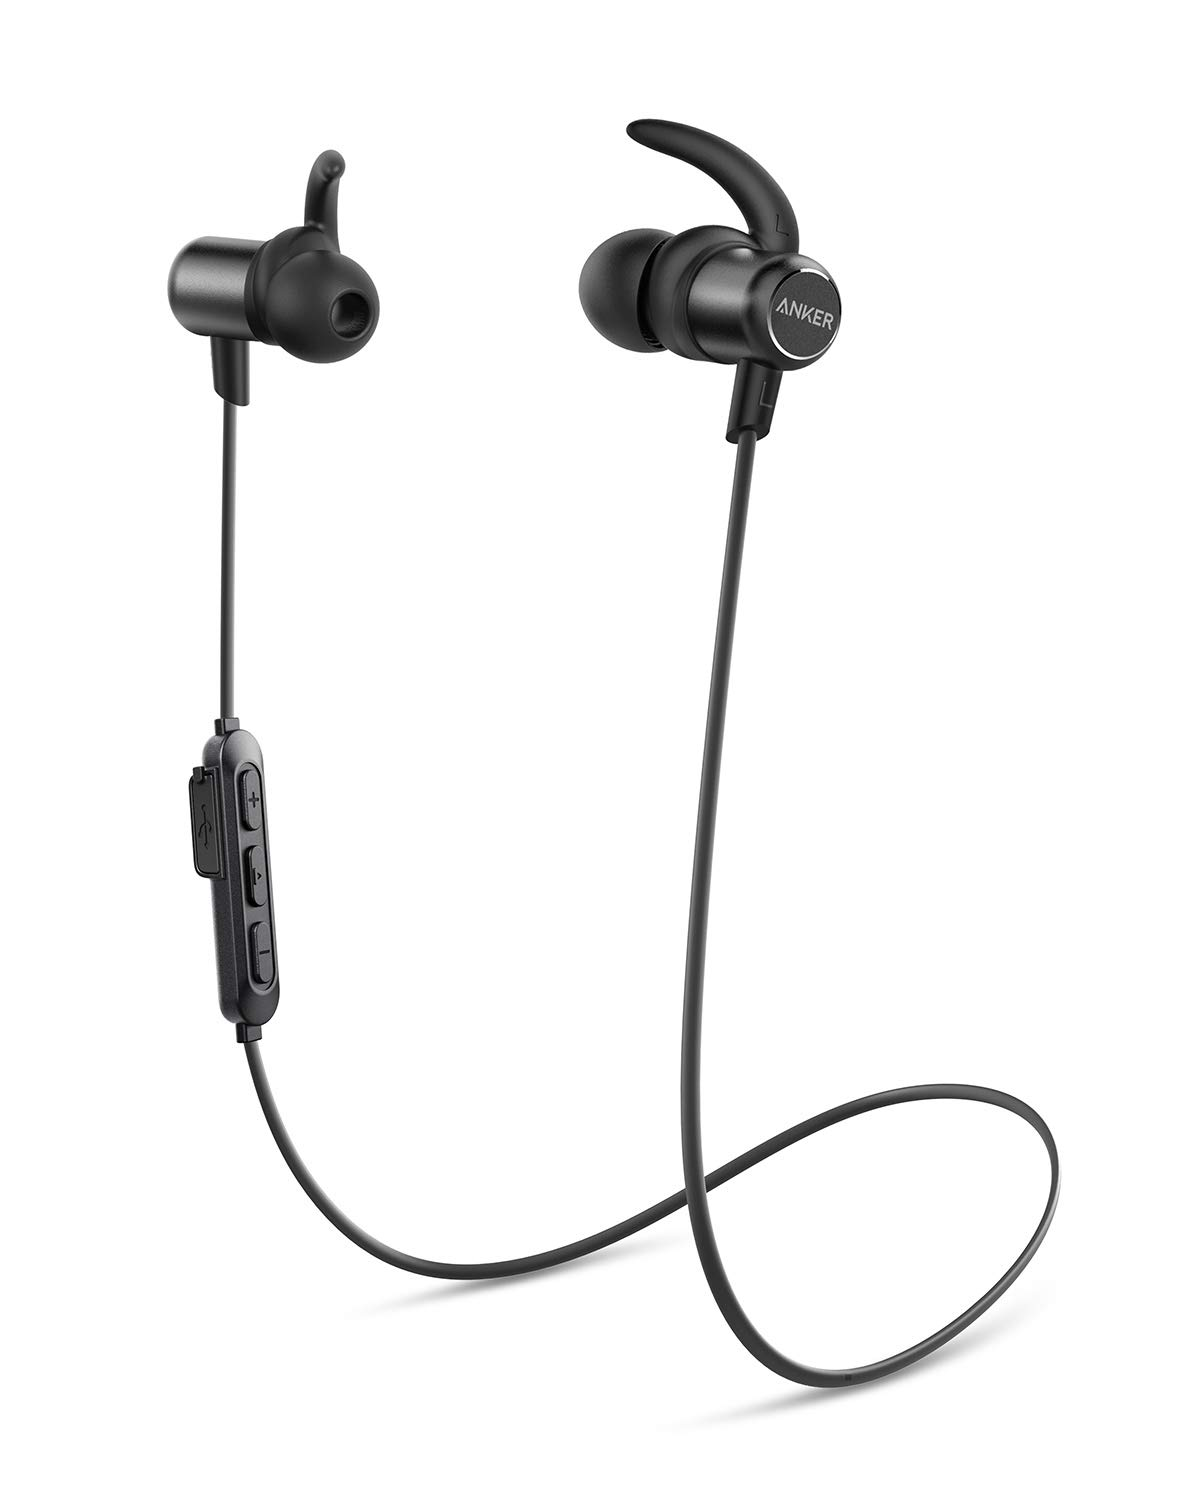 c00028534e1 Anker Wireless Headphones, Upgraded SoundBuds Slim Workout Headphones  Magnetic In-Ear Earbuds, Bluetooth 5.0, 10-Hour Playtime, IPX7 Waterproof  for Workouts ...